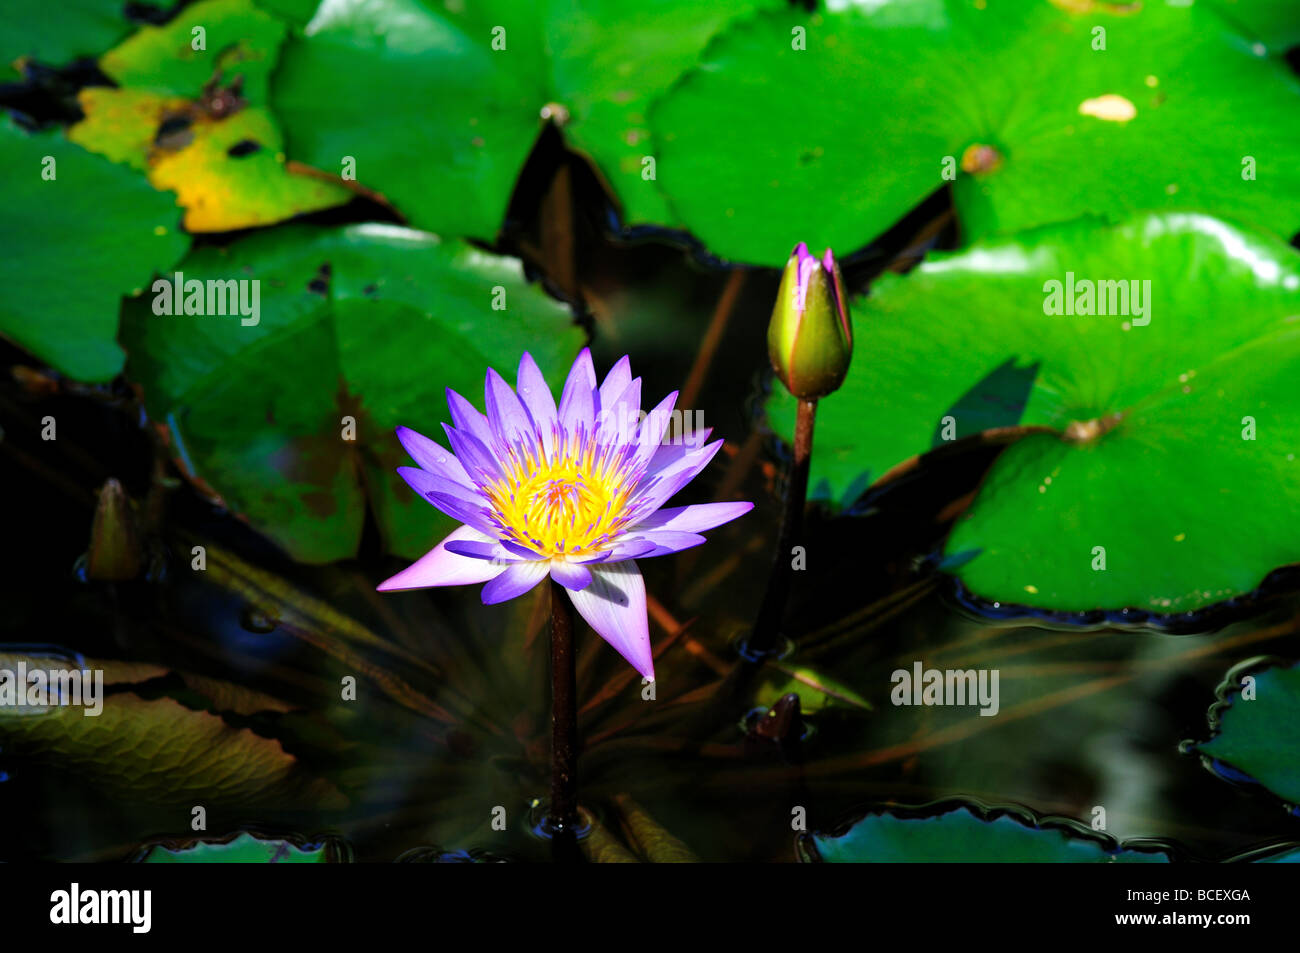 Waterlily Flowers In A Pond Stock Photos Waterlily Flowers In A